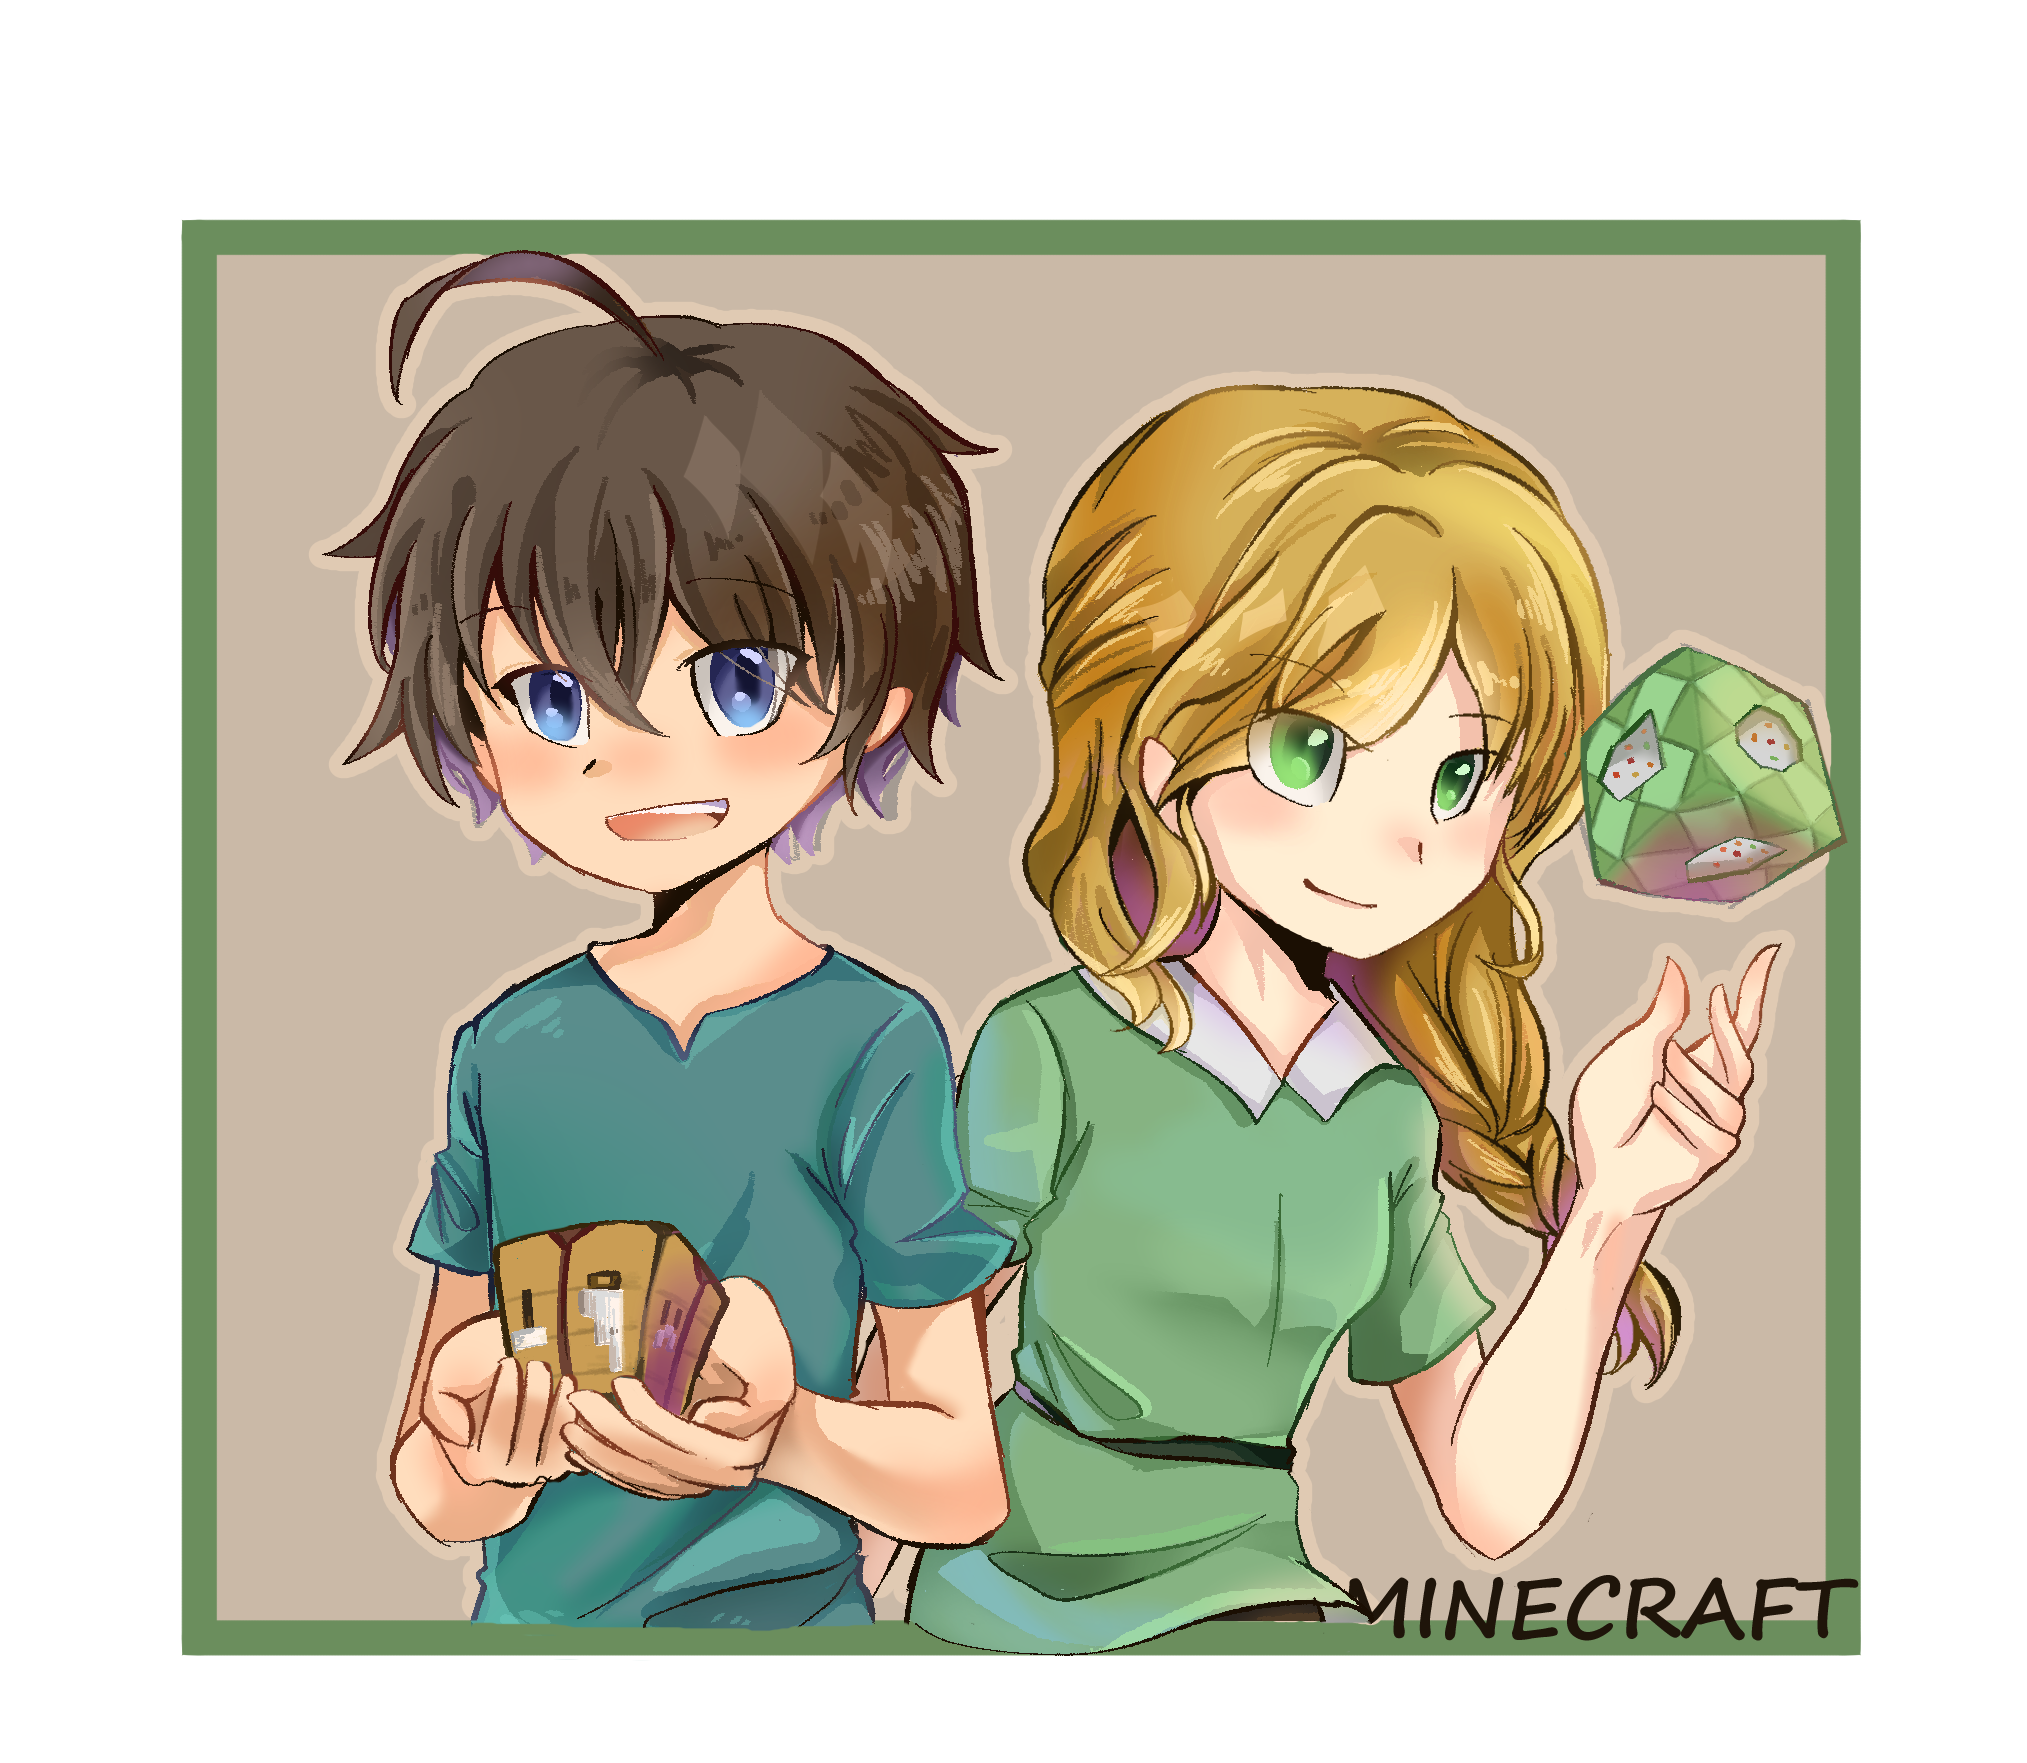 Steve And Alex Minecraft In 2020 Minecraft Anime Minecraft Fan Art Minecraft Art